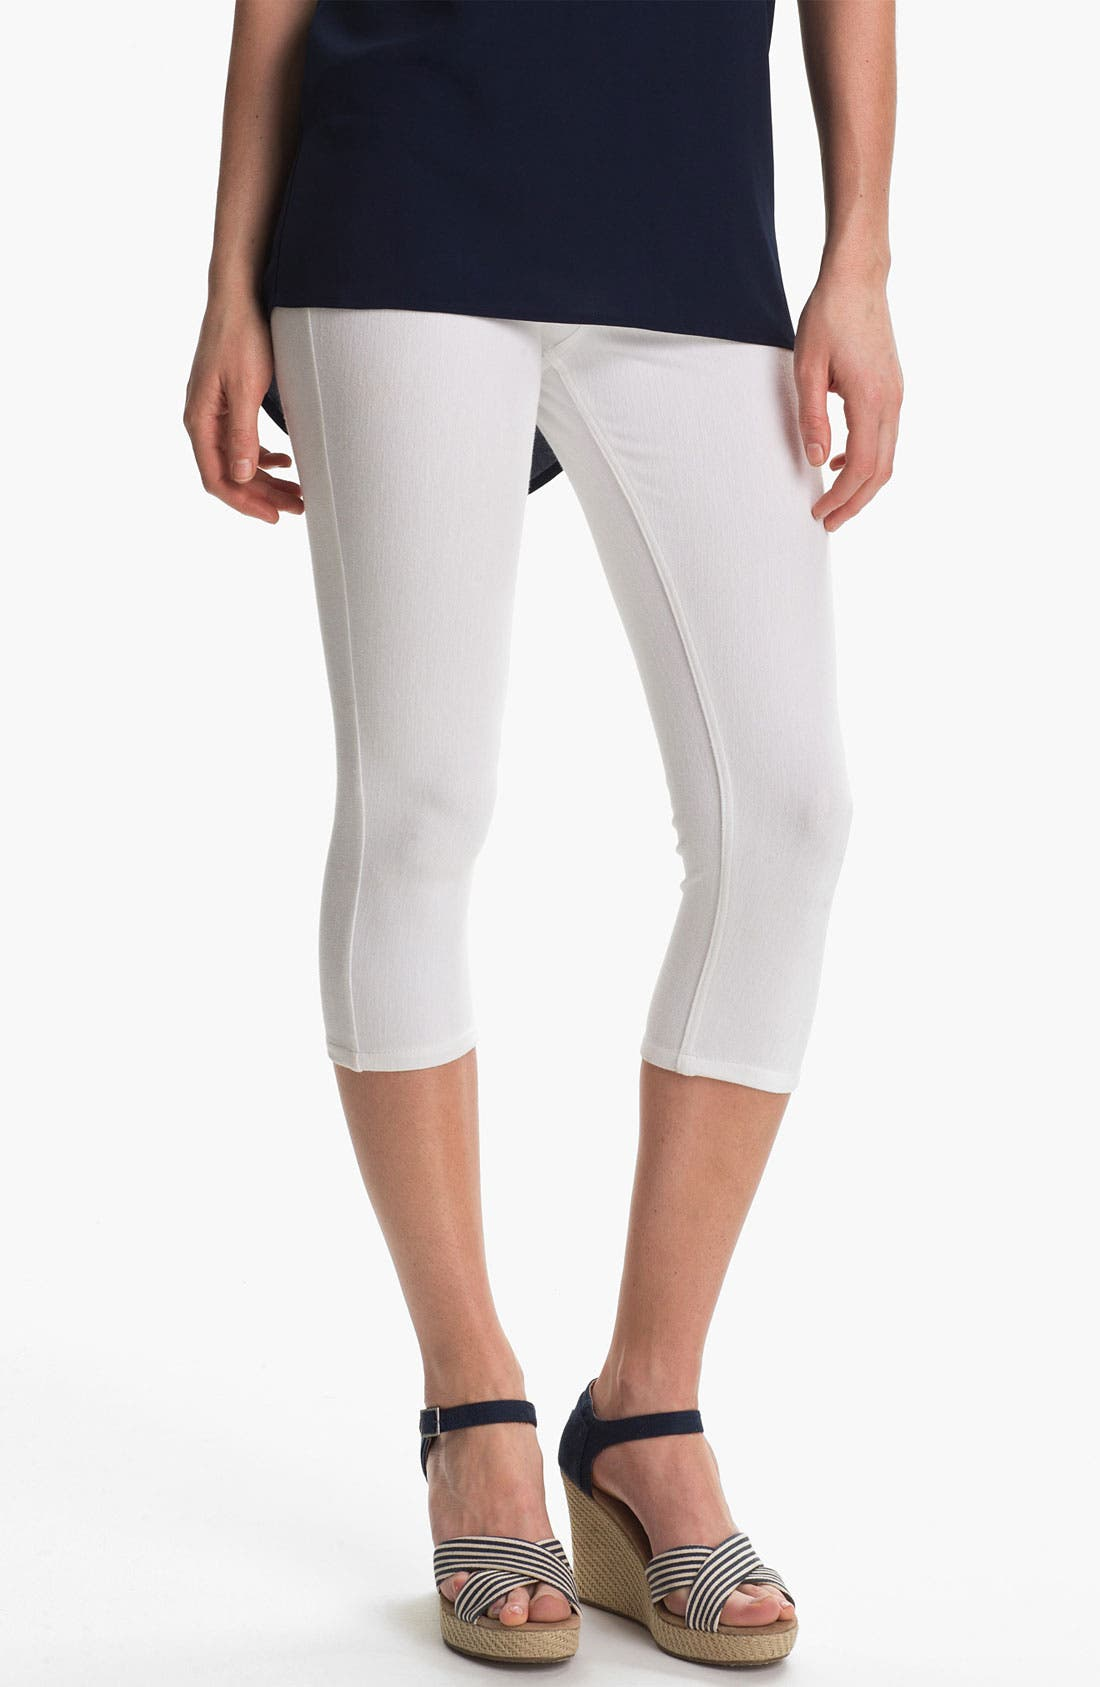 Alternate Image 1 Selected - Hue 'New Denim' Capri Leggings